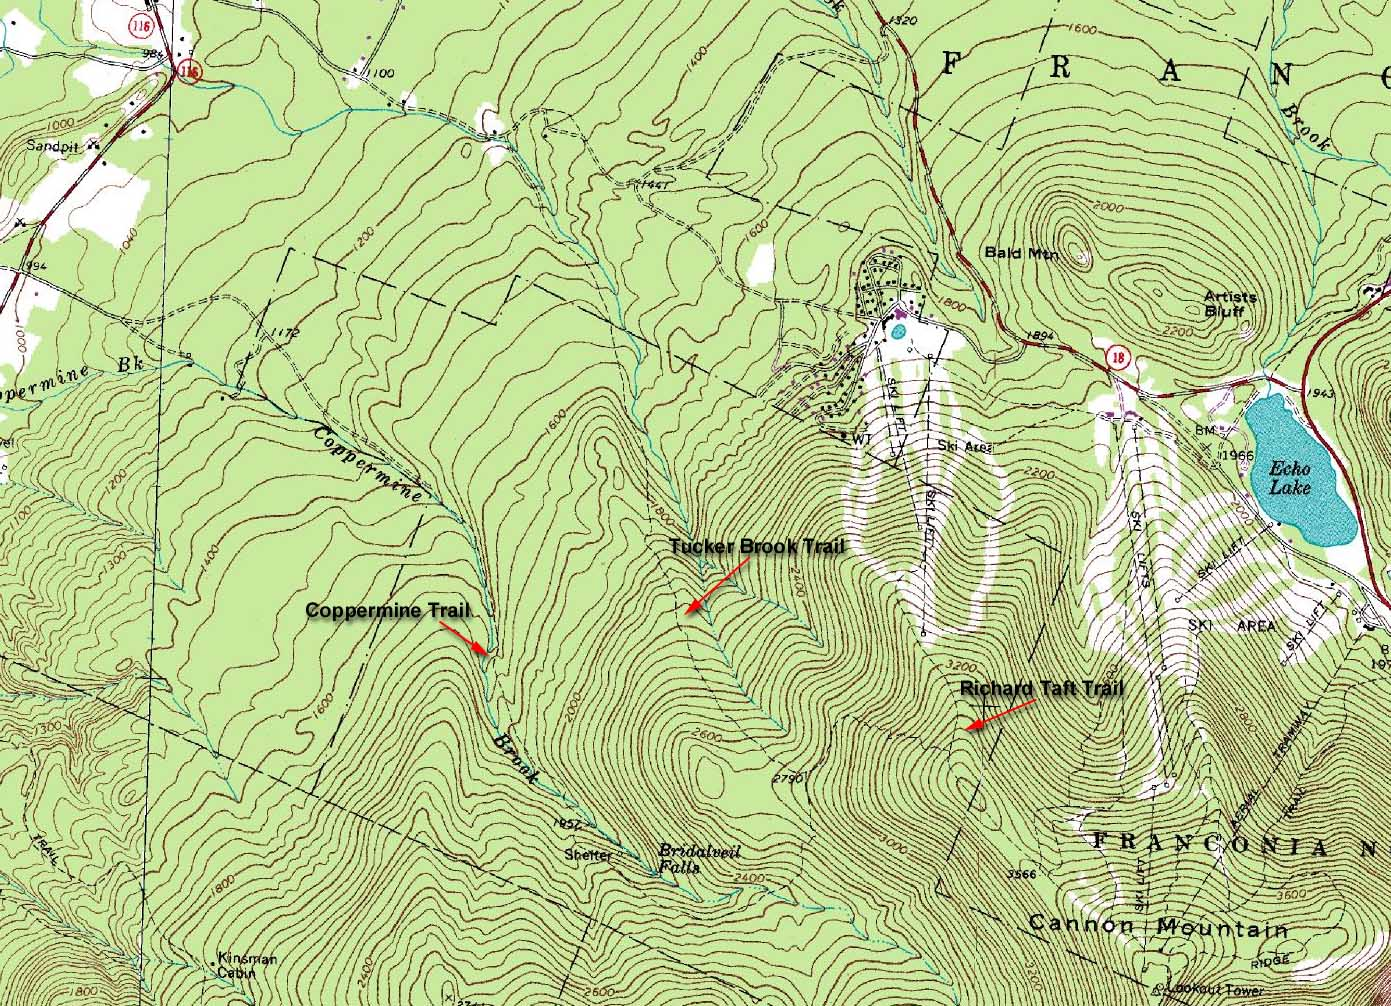 1988 Usgs Topographic Map Of Cannon Mountain